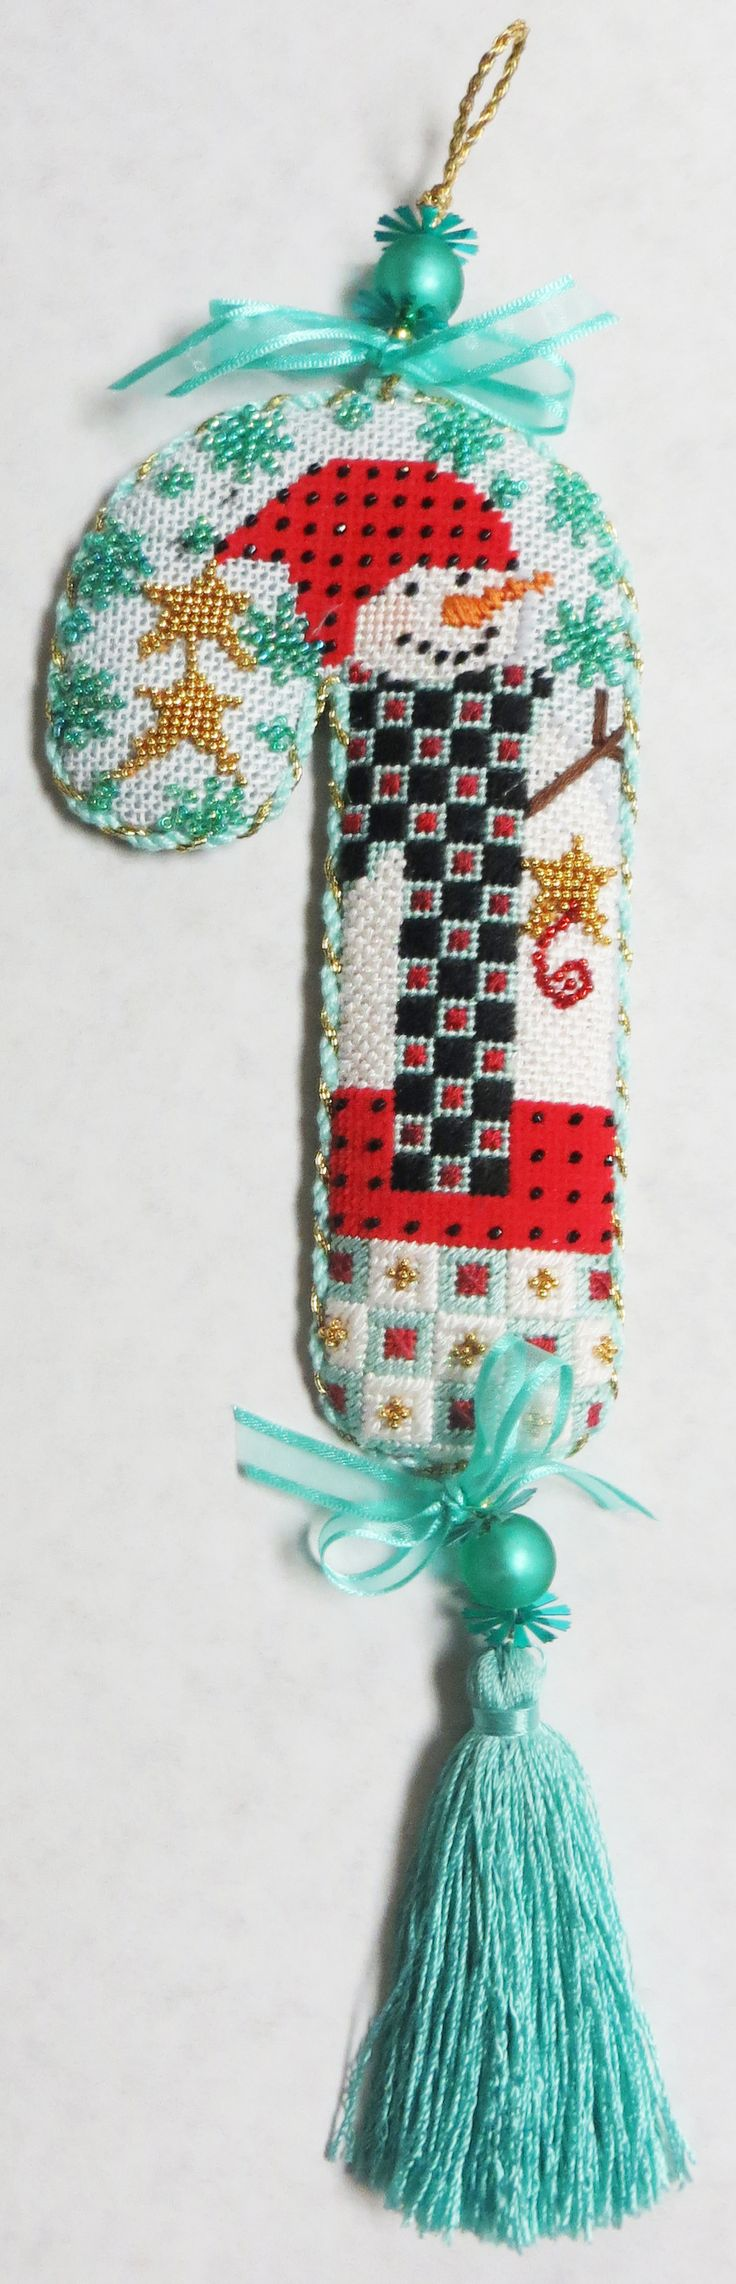 Candy Cane Snowman stitched by Kathy M....interesting colors